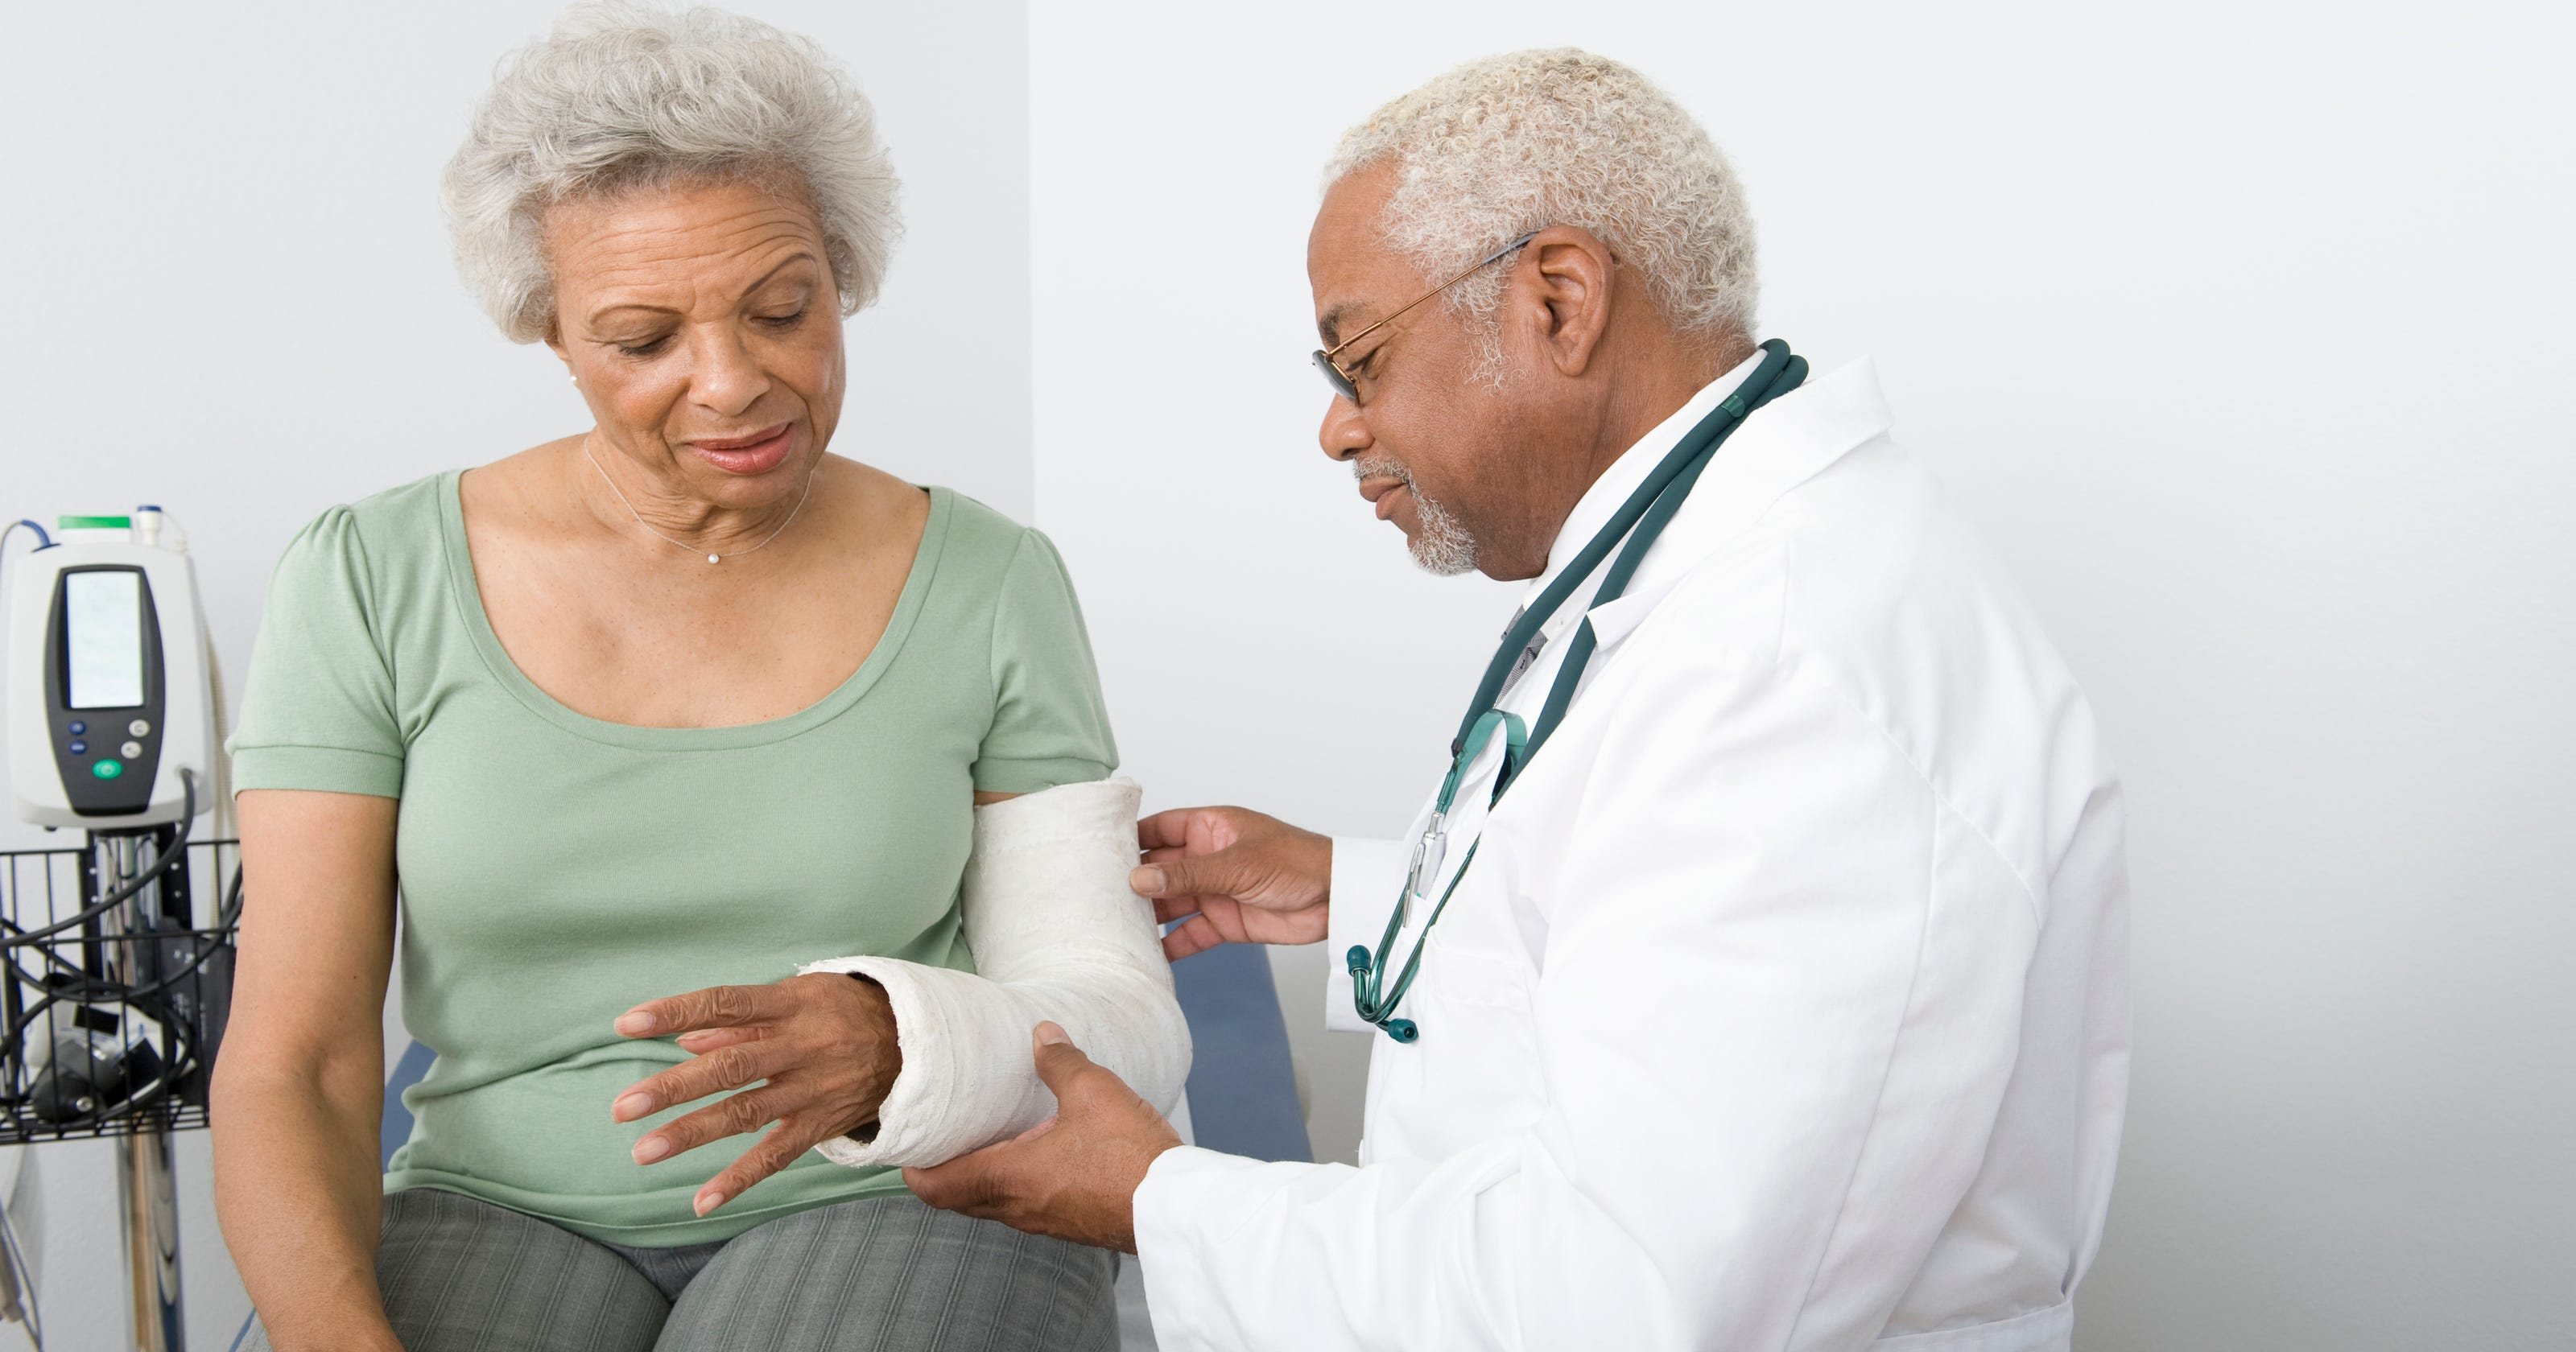 Bone loss drug: Older women may benefit from drug given by IV